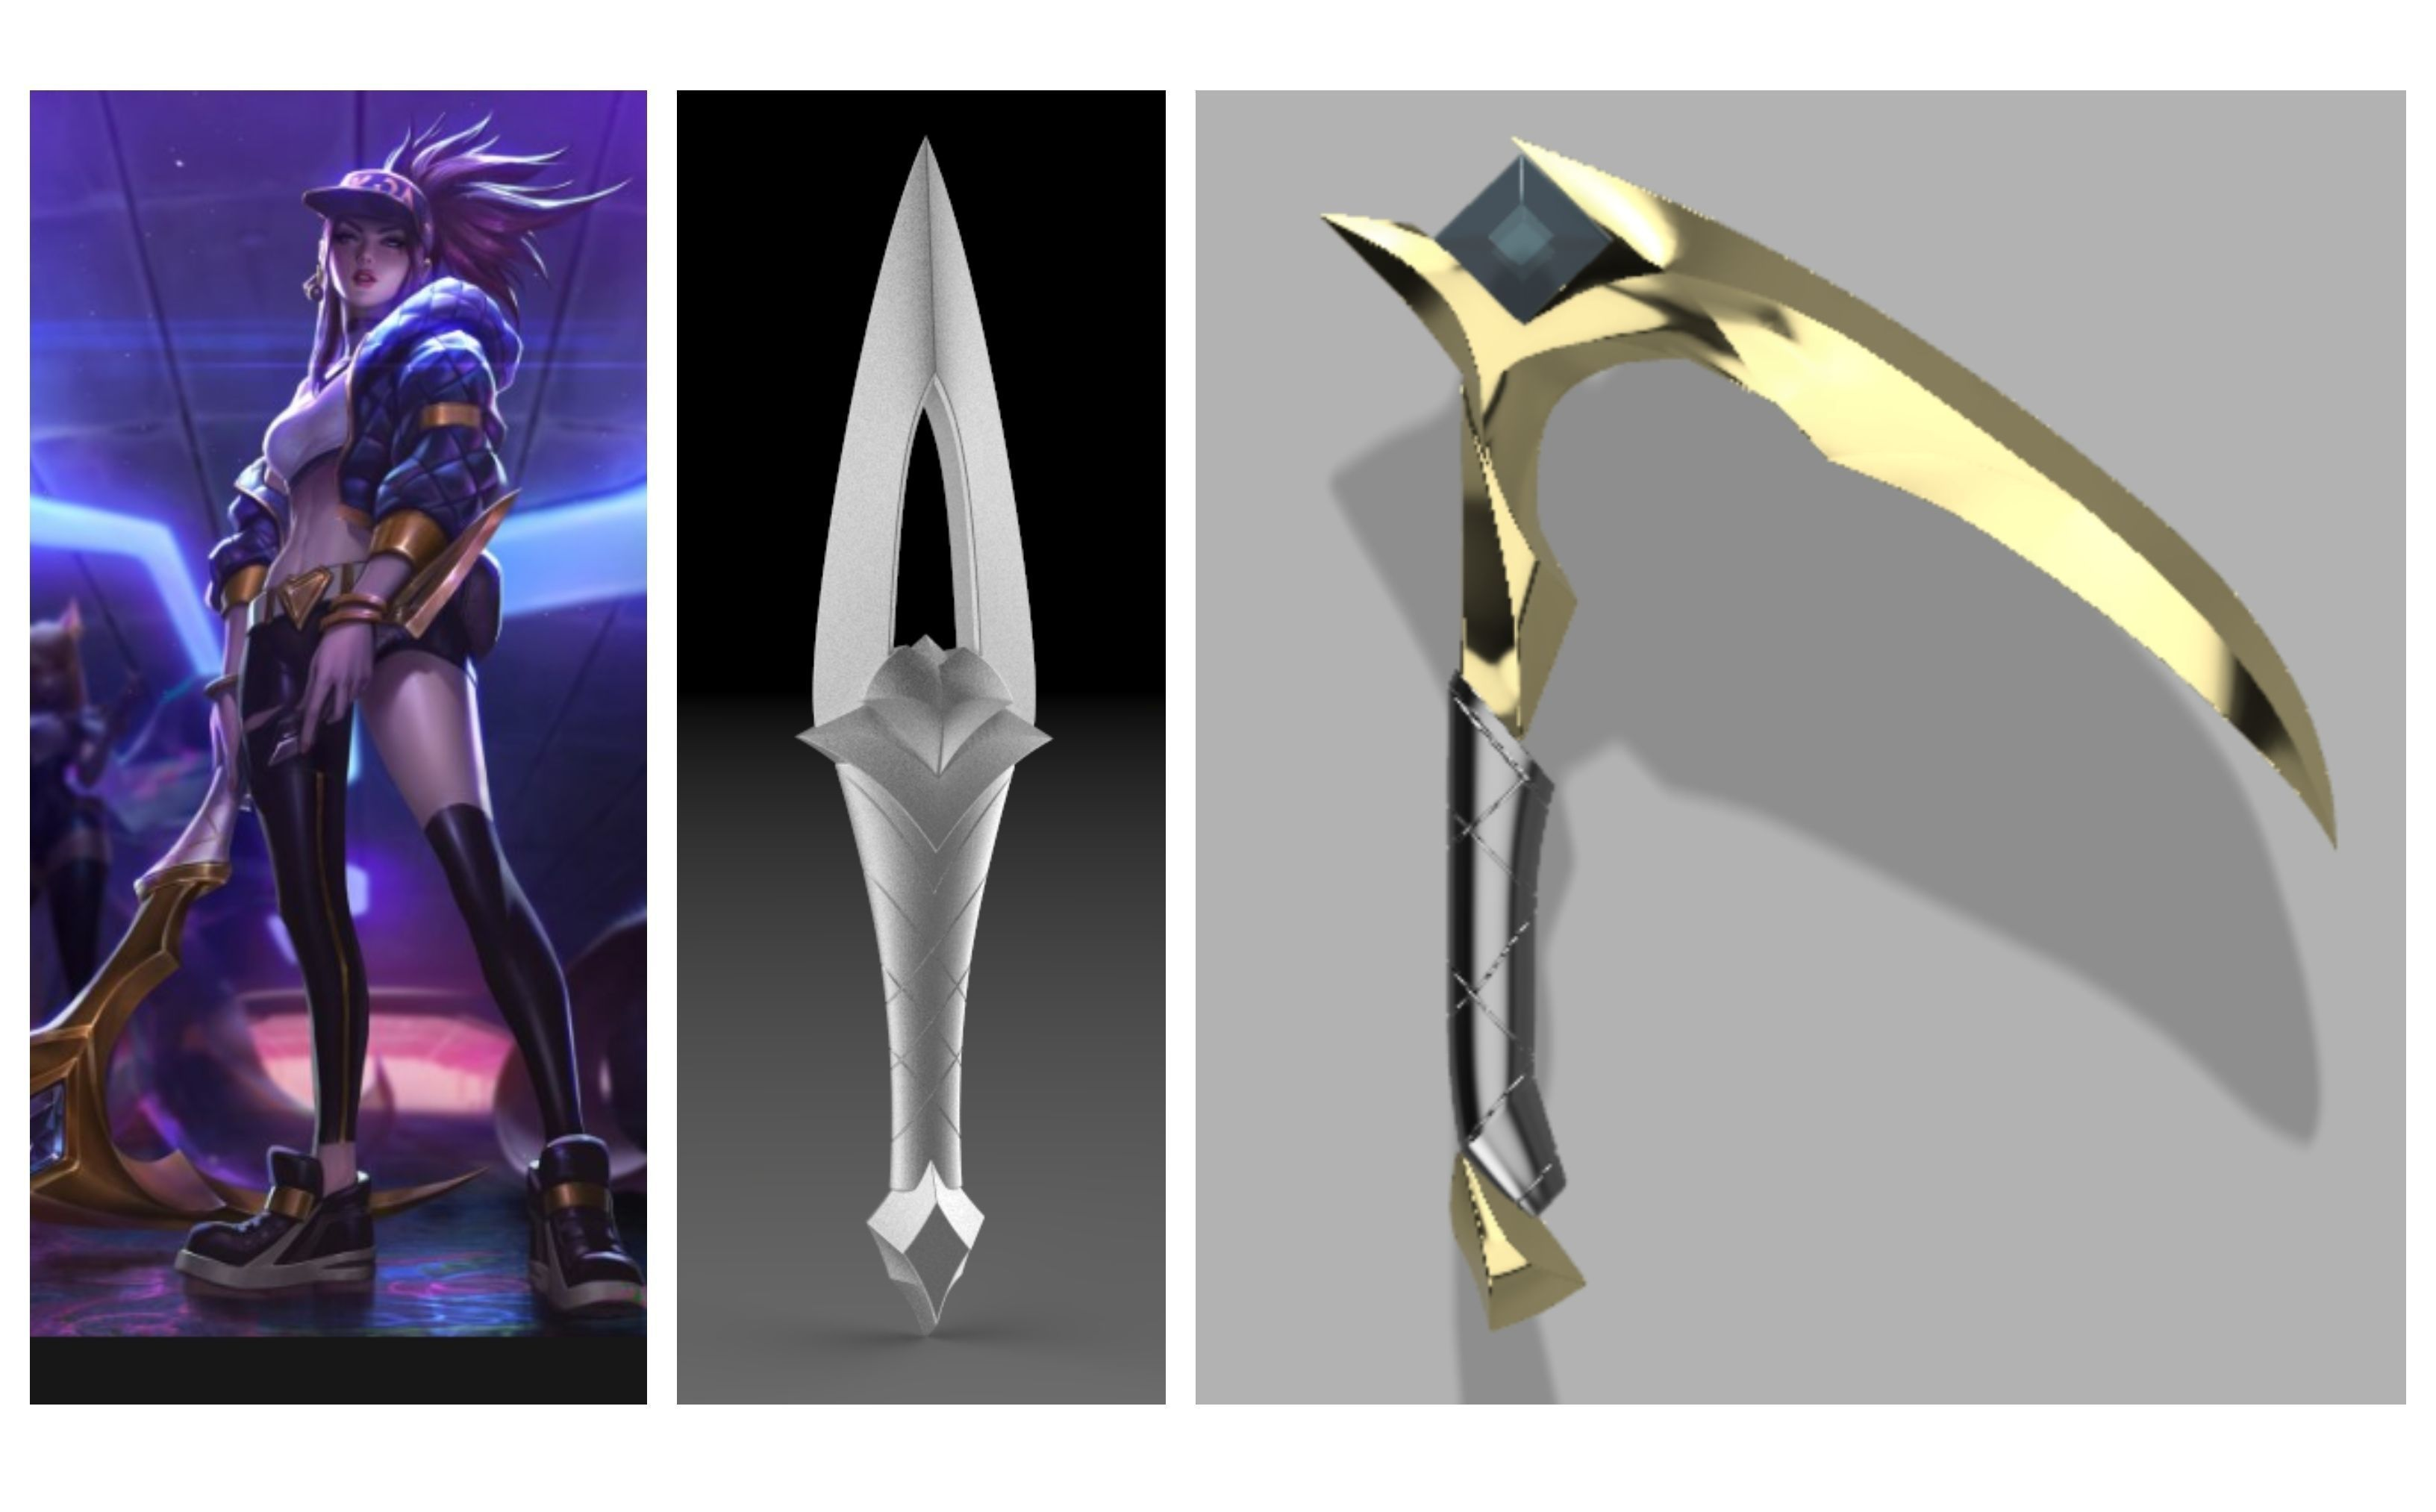 Costume Props Provided Lol Kda Akali Sword Weapons Cosplay Costume Props Accessories Sickle And Dagger Set